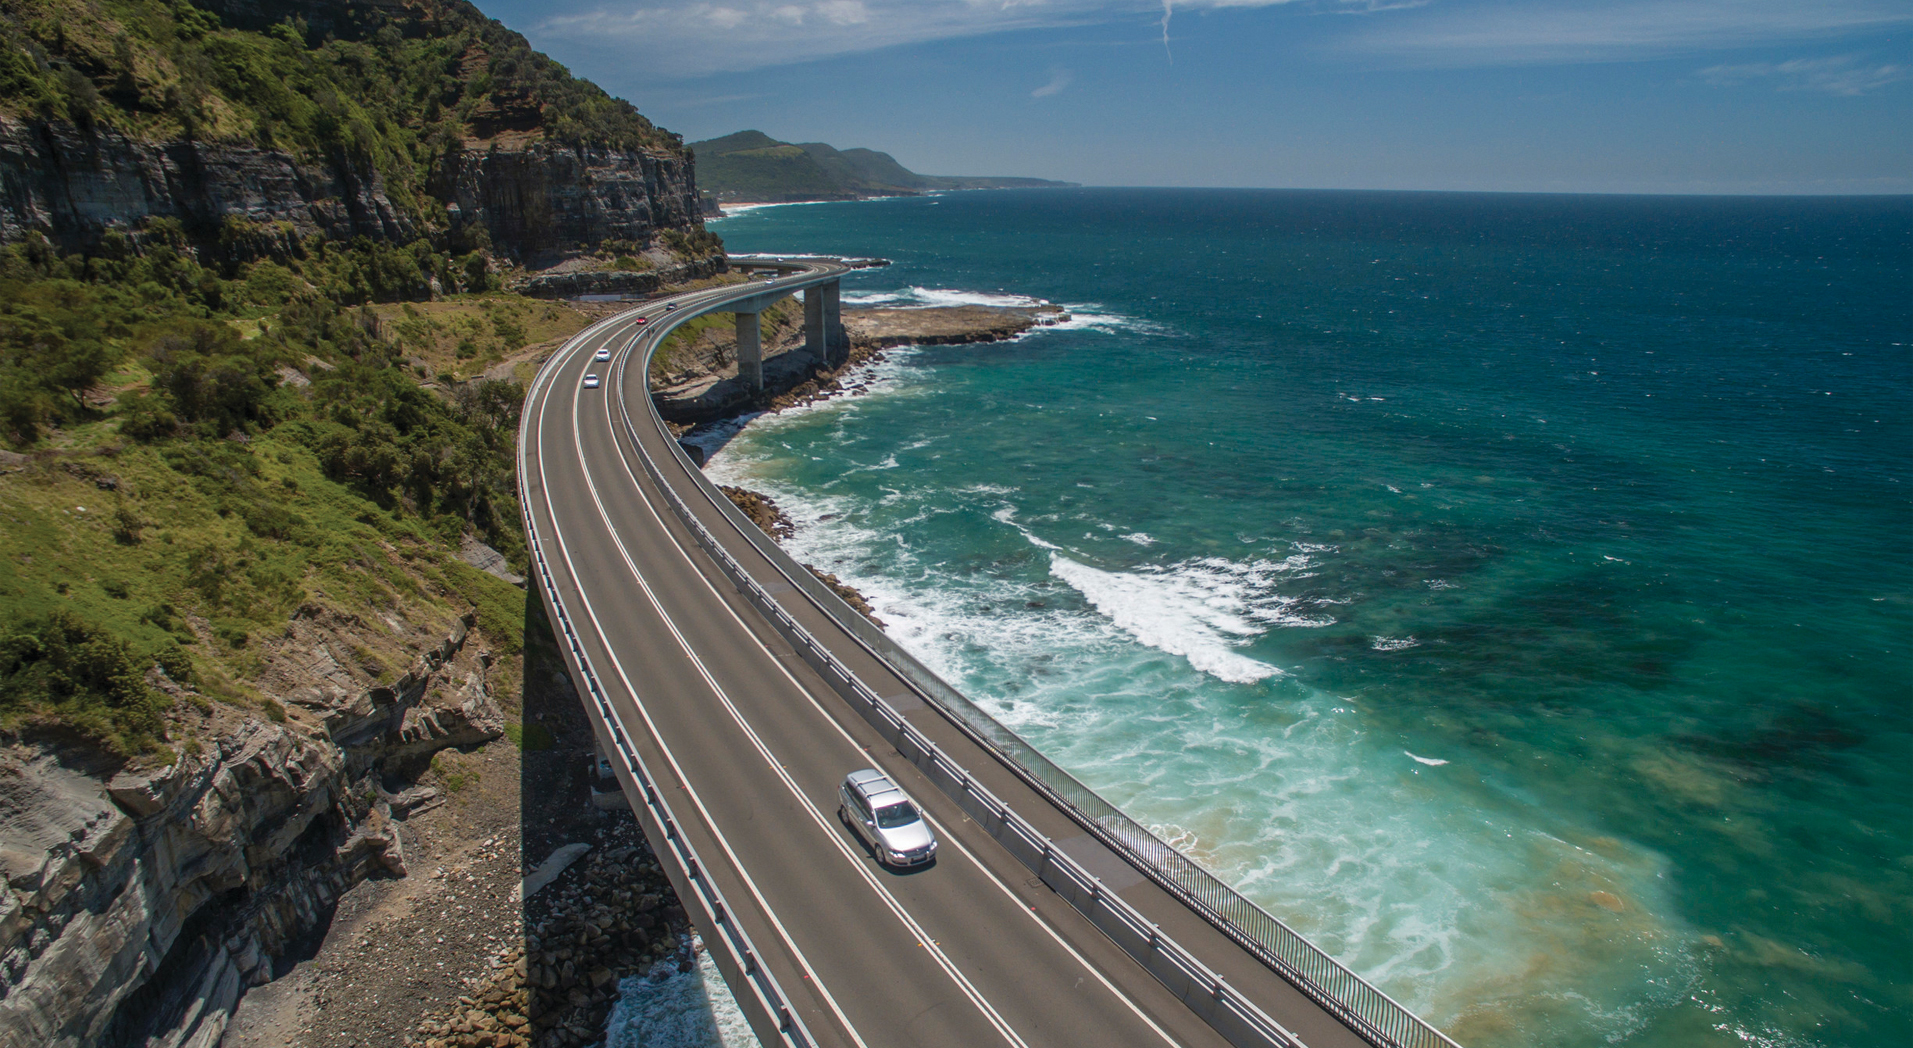 Key infrastructure supporting the Illawarra-Shoalhaven economy